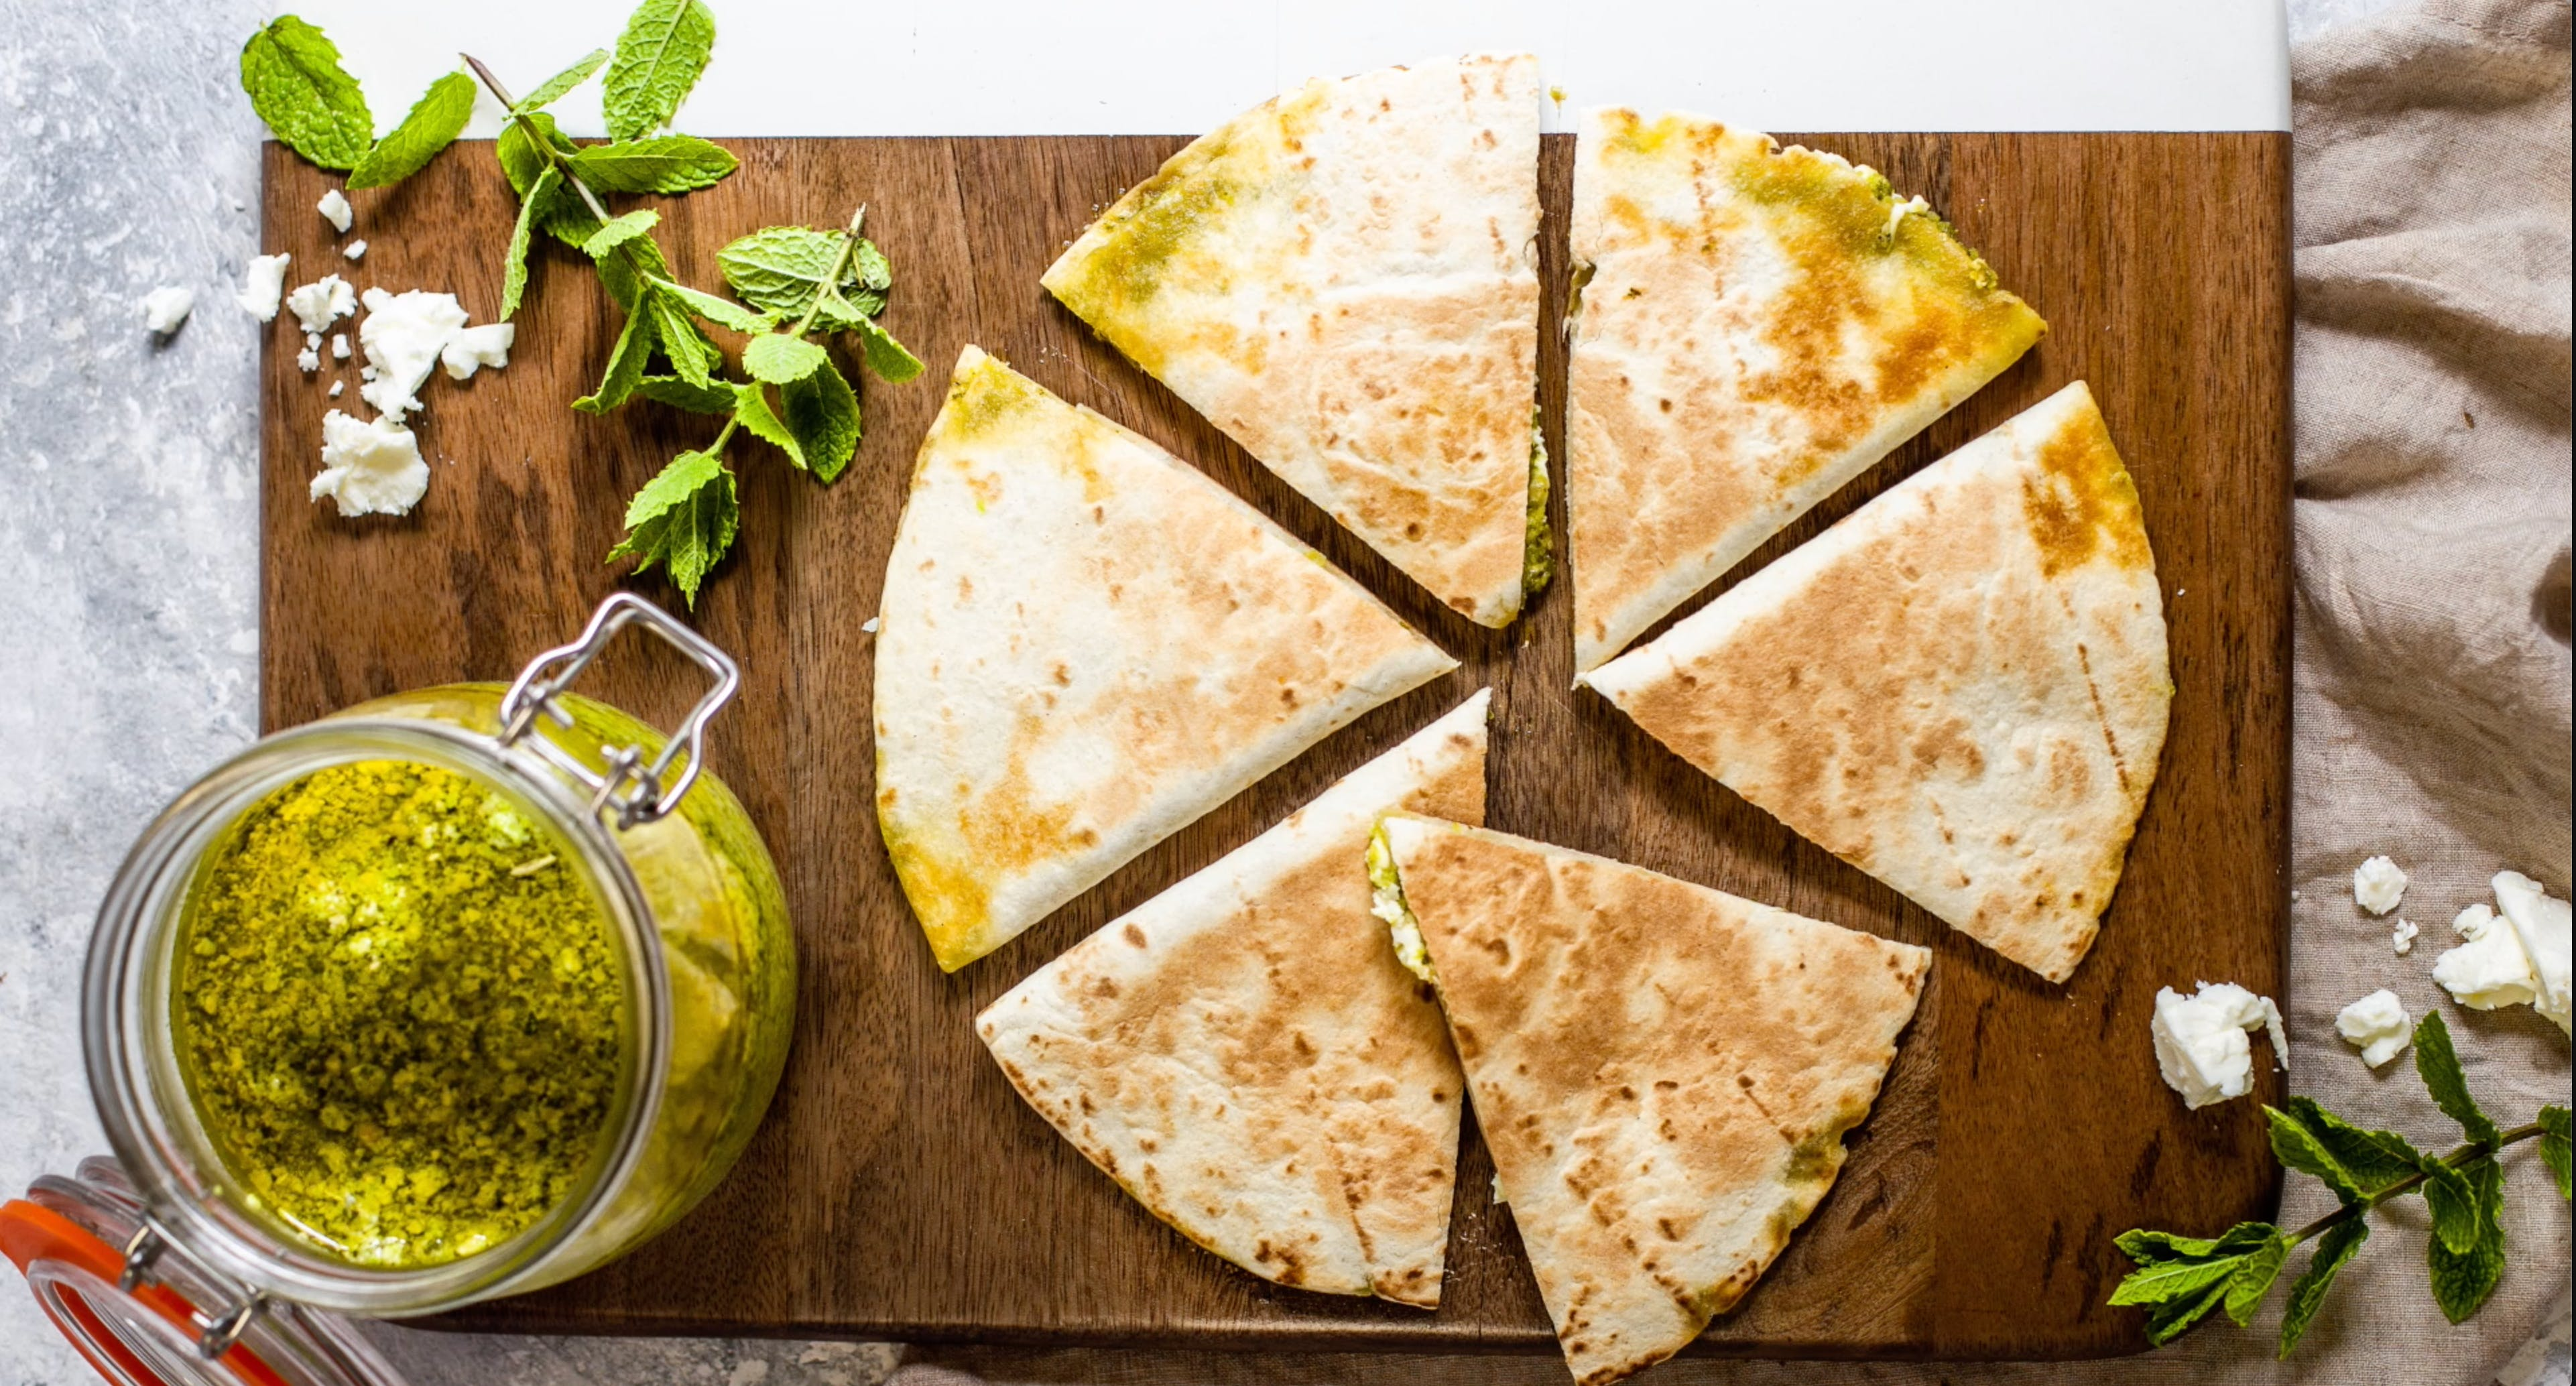 Pea and Mint Pesto Quesadilla